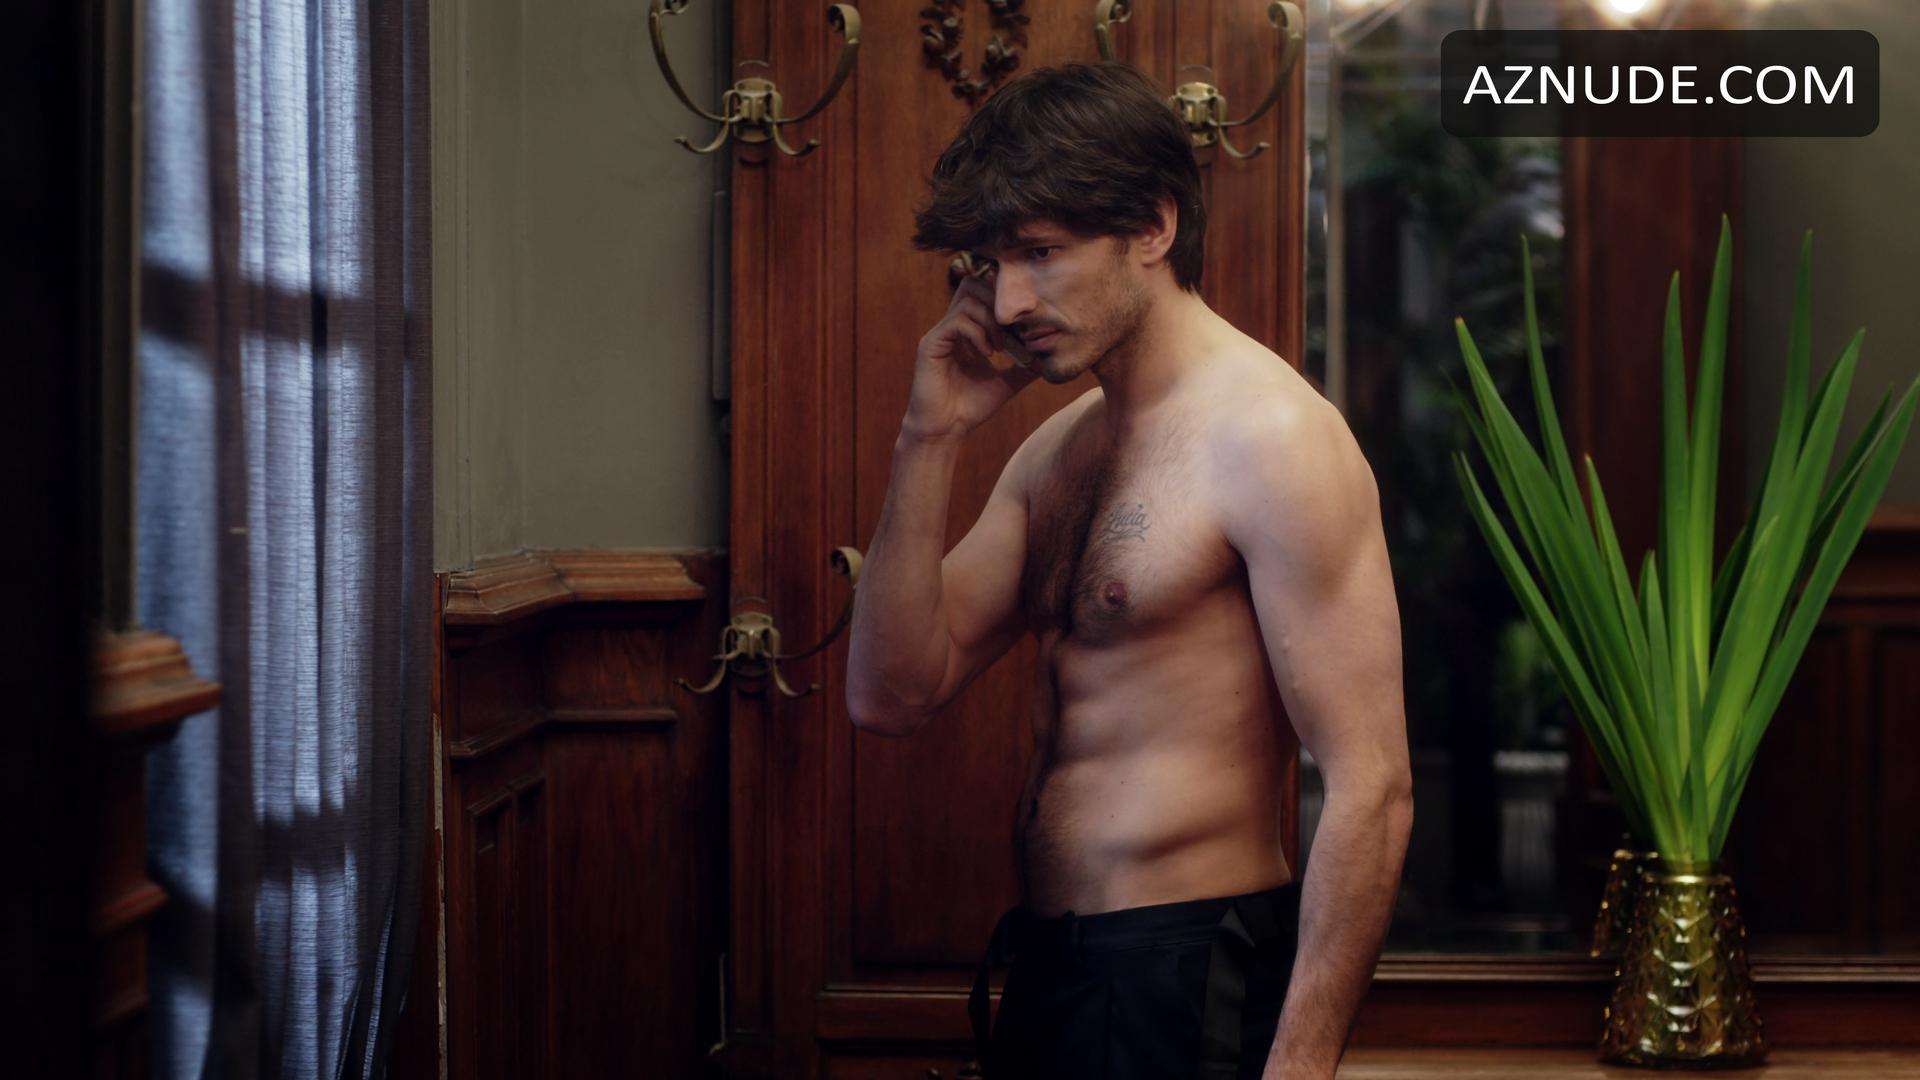 Magnificent andres velencoso penis sorry, that